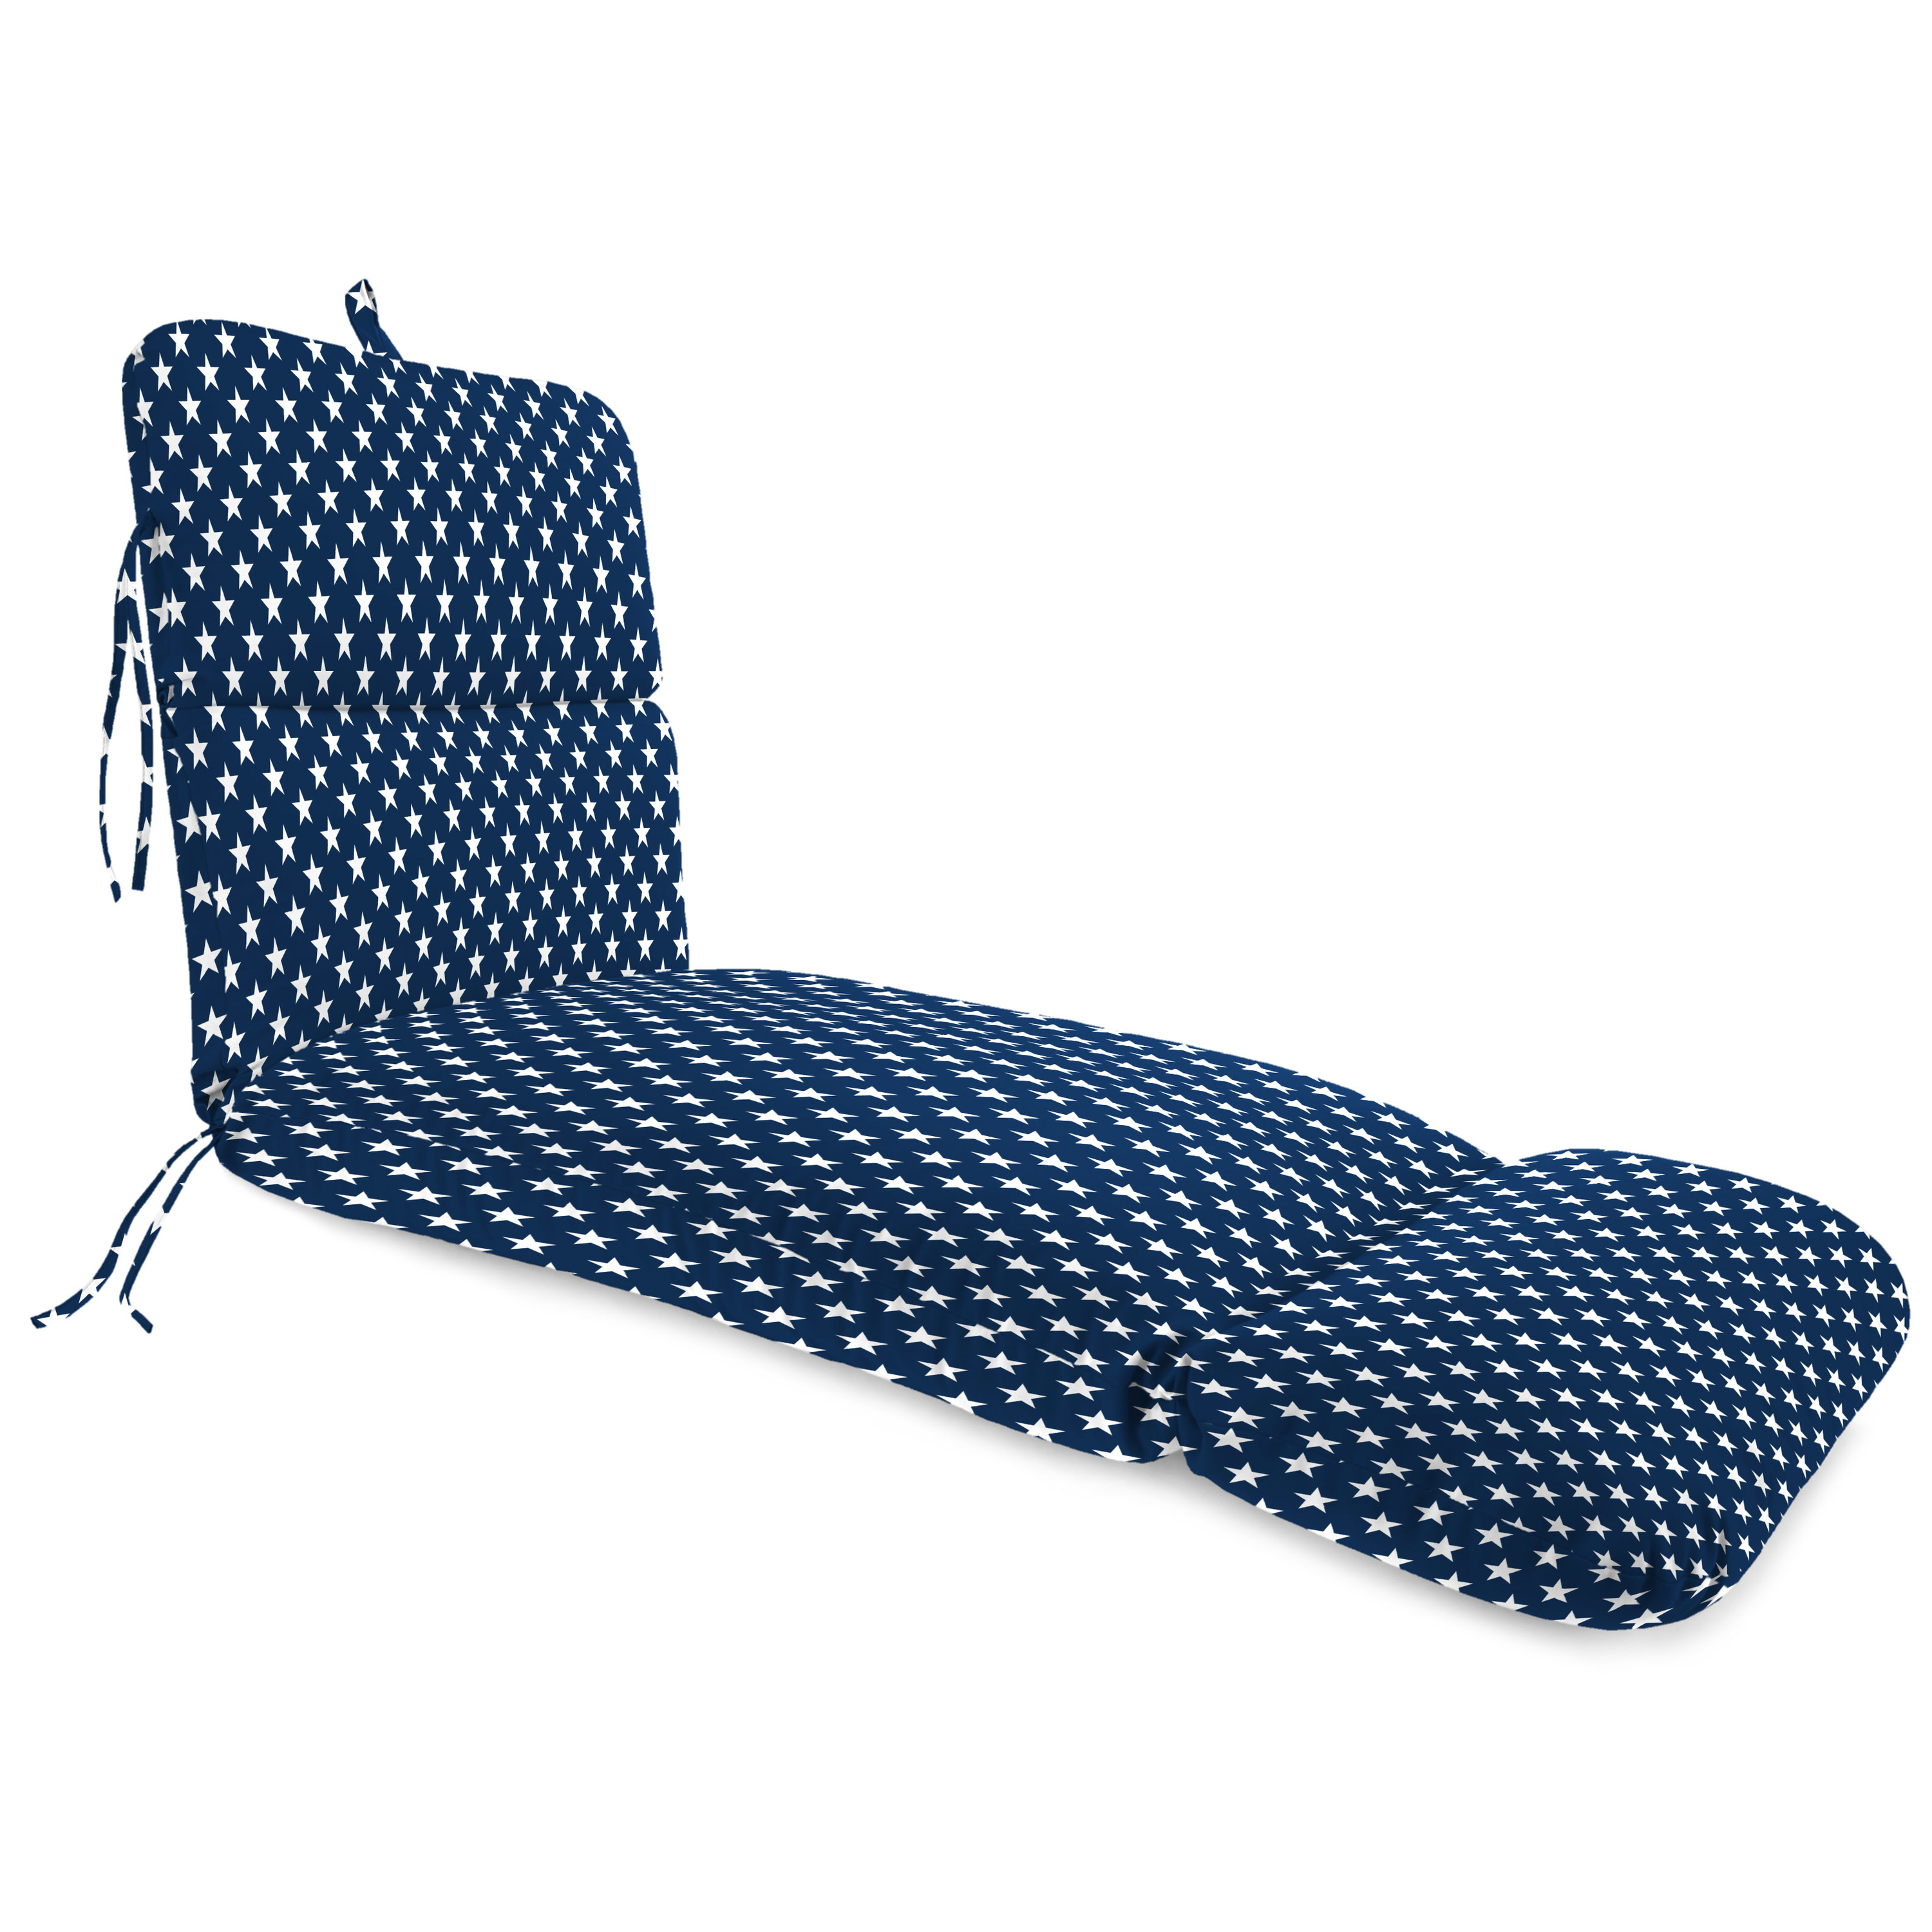 Jordan Manufacturing Outdoor Chaise Lounge Cushion, Stars Oxford